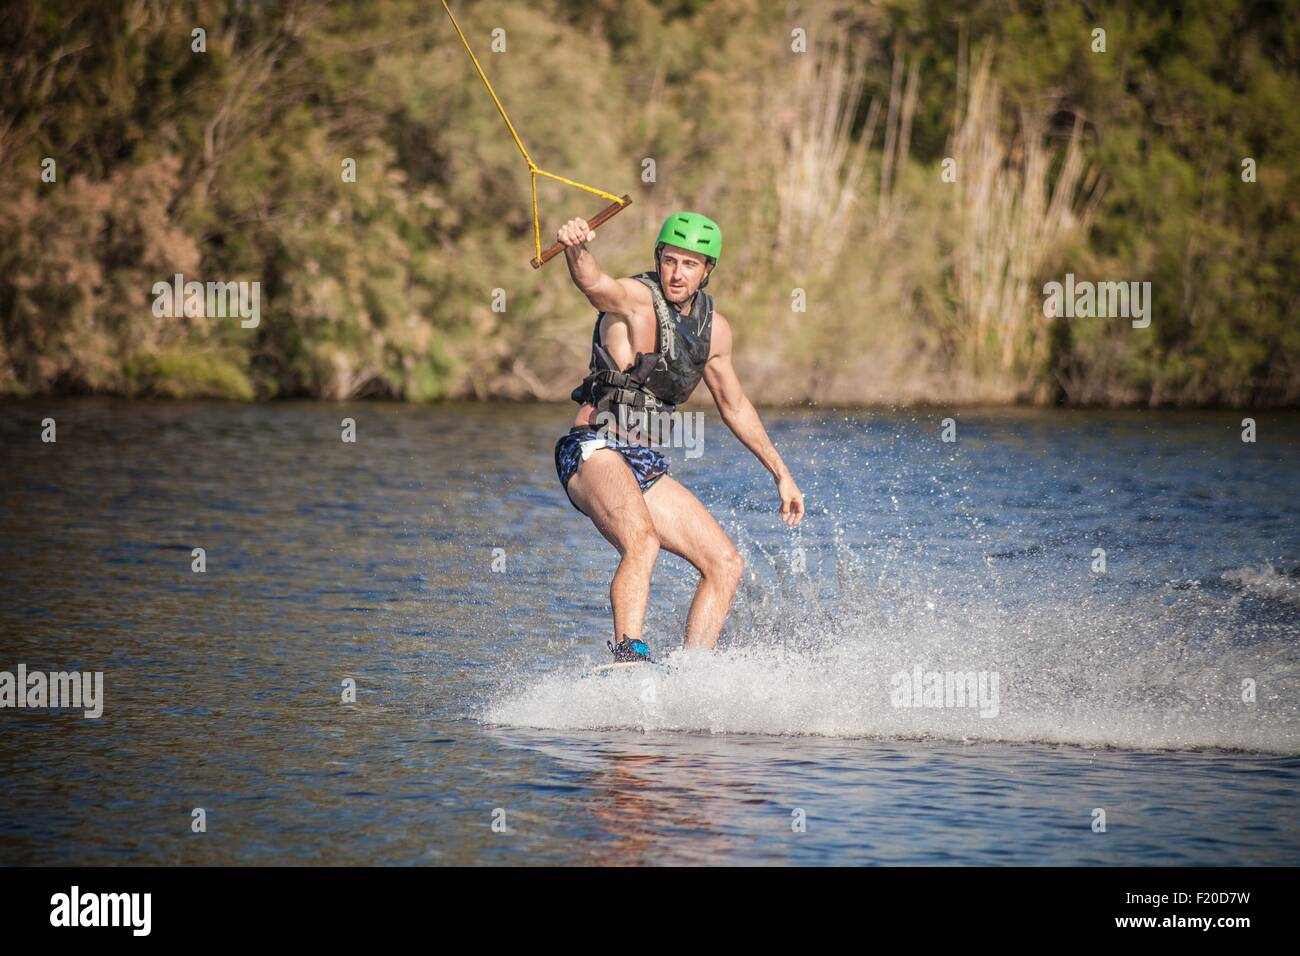 Young man in sea wakeboarding, Cagliari, Sardinia, Italy - Stock Image